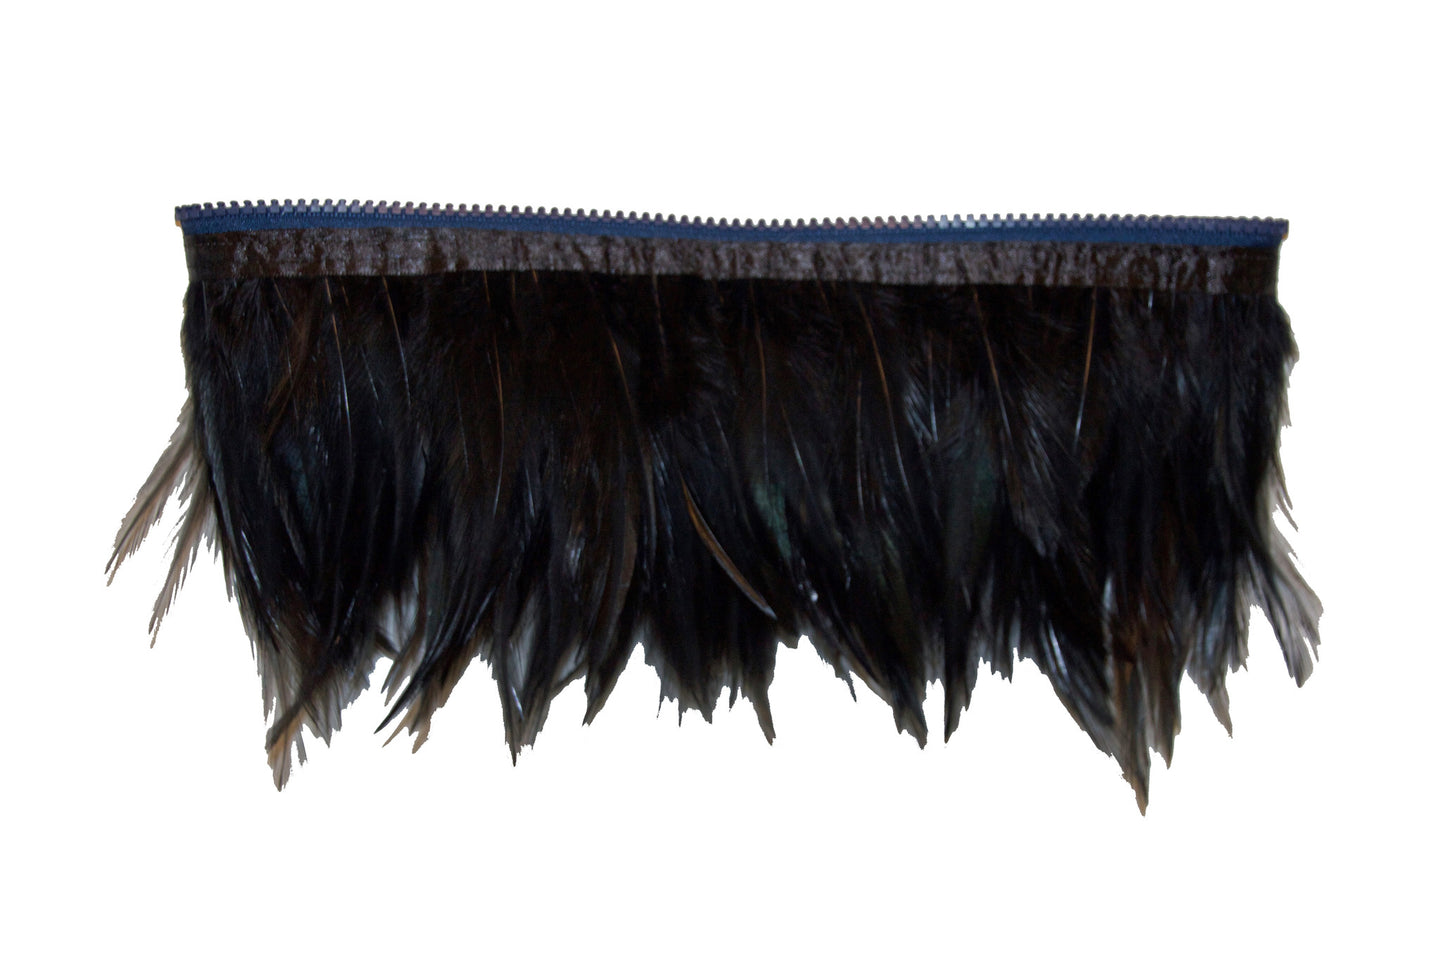 Attachable Black Feather Trim for Christina Cross Body Bag